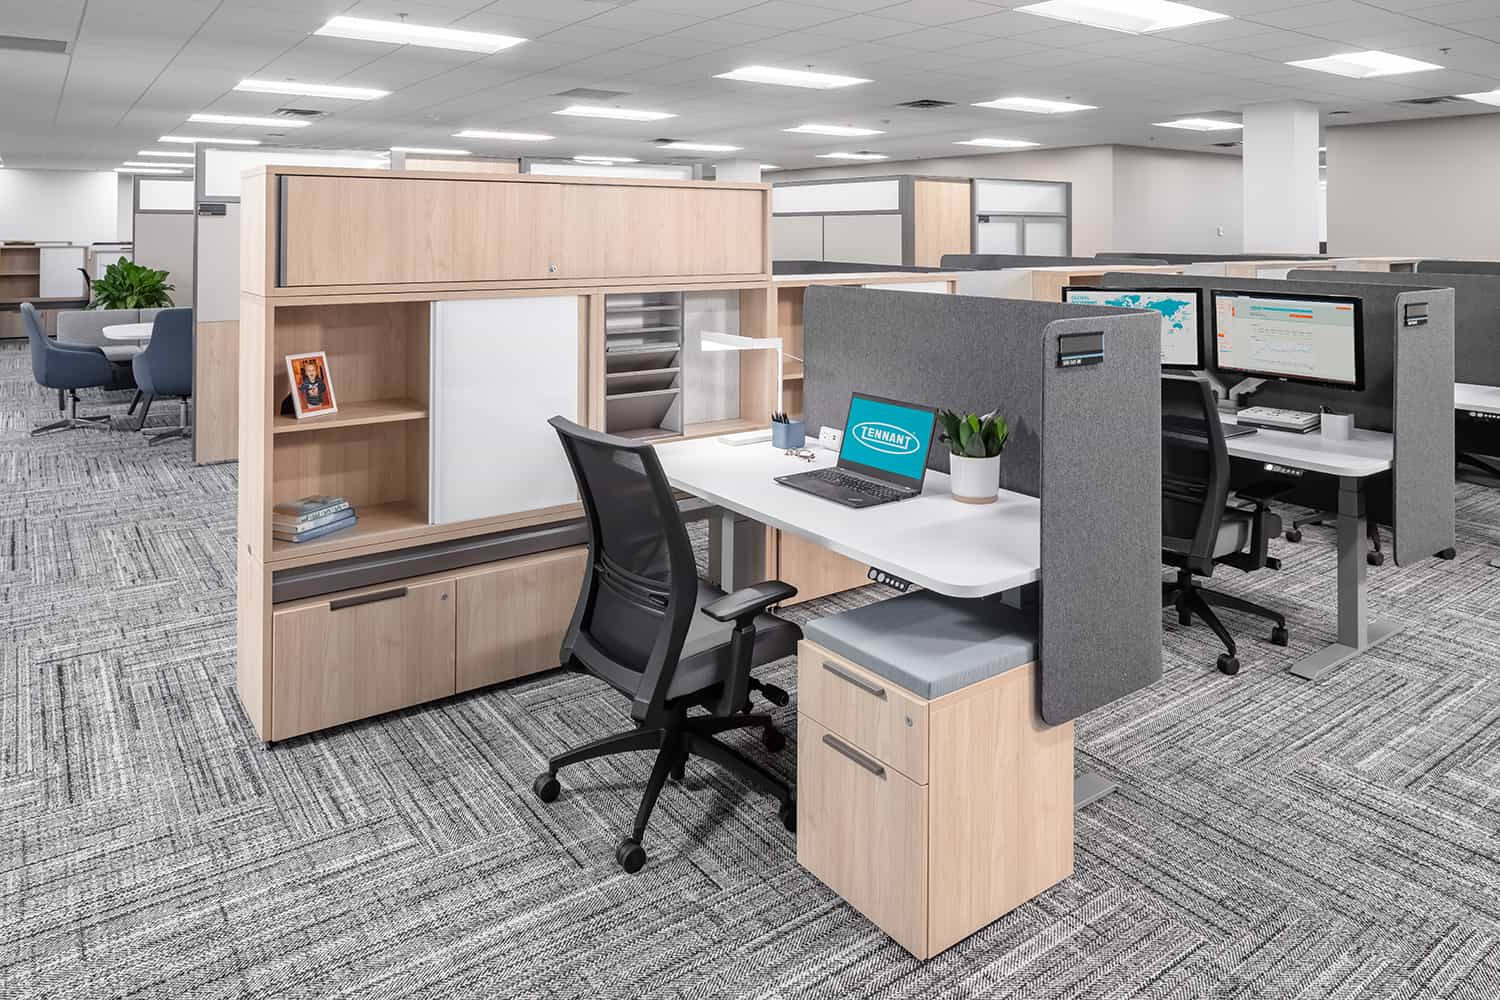 A semi-private cubicle workstation with a lowered desk.